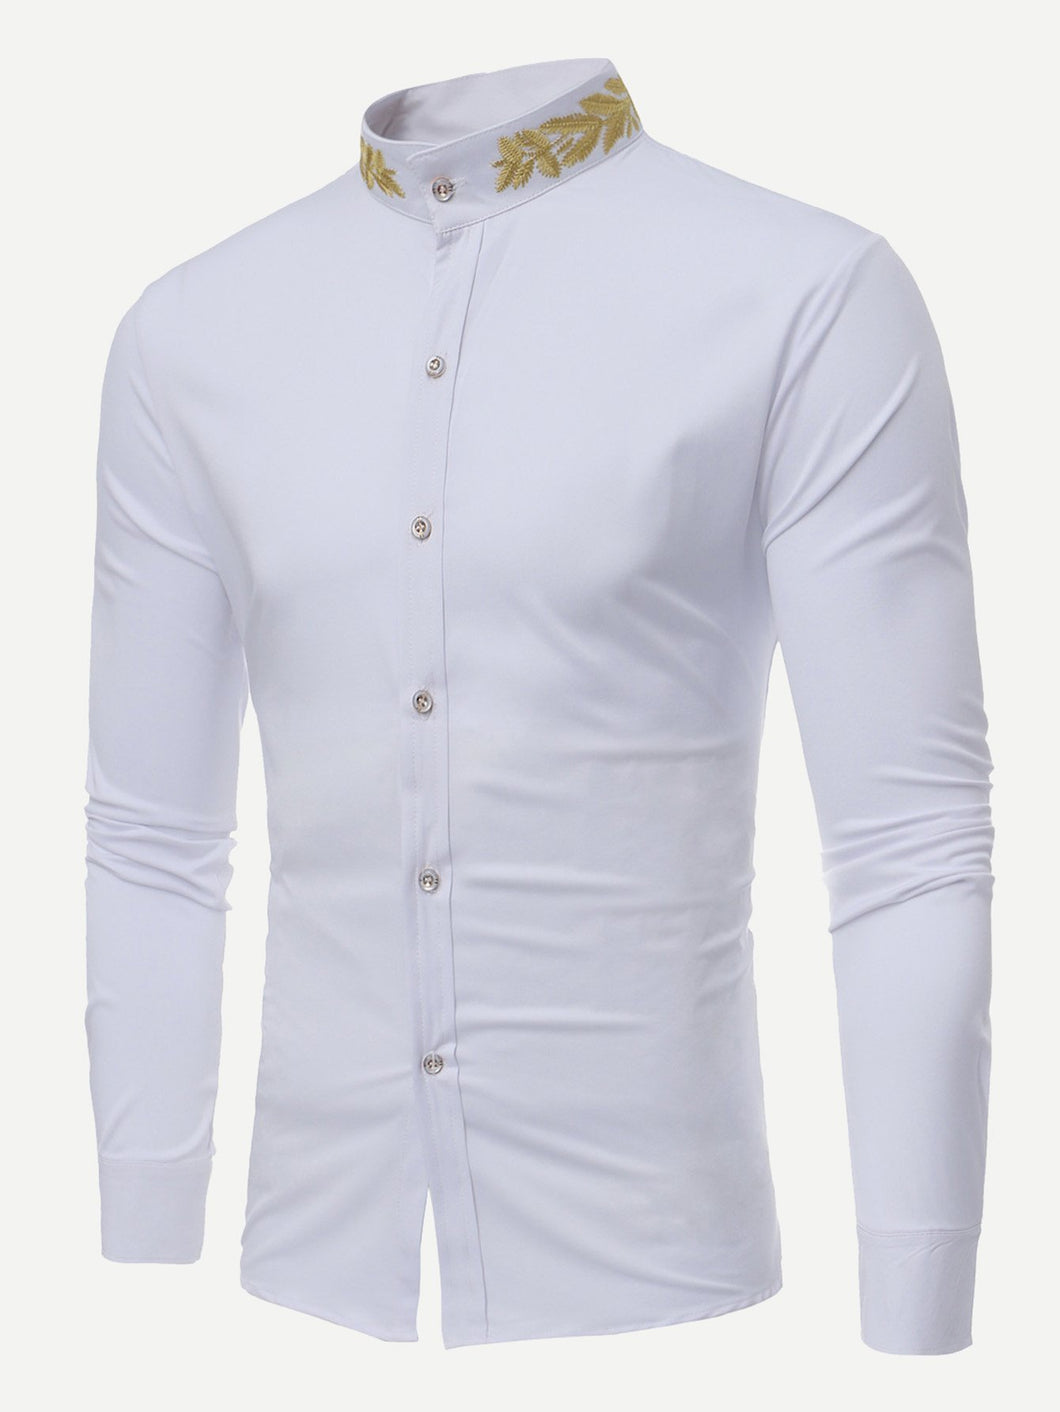 Men - Apparel - Shirts - Dress Shirts Men Wheat Ears Embroidery Shirt fashion clothing accessories shoes jewelry